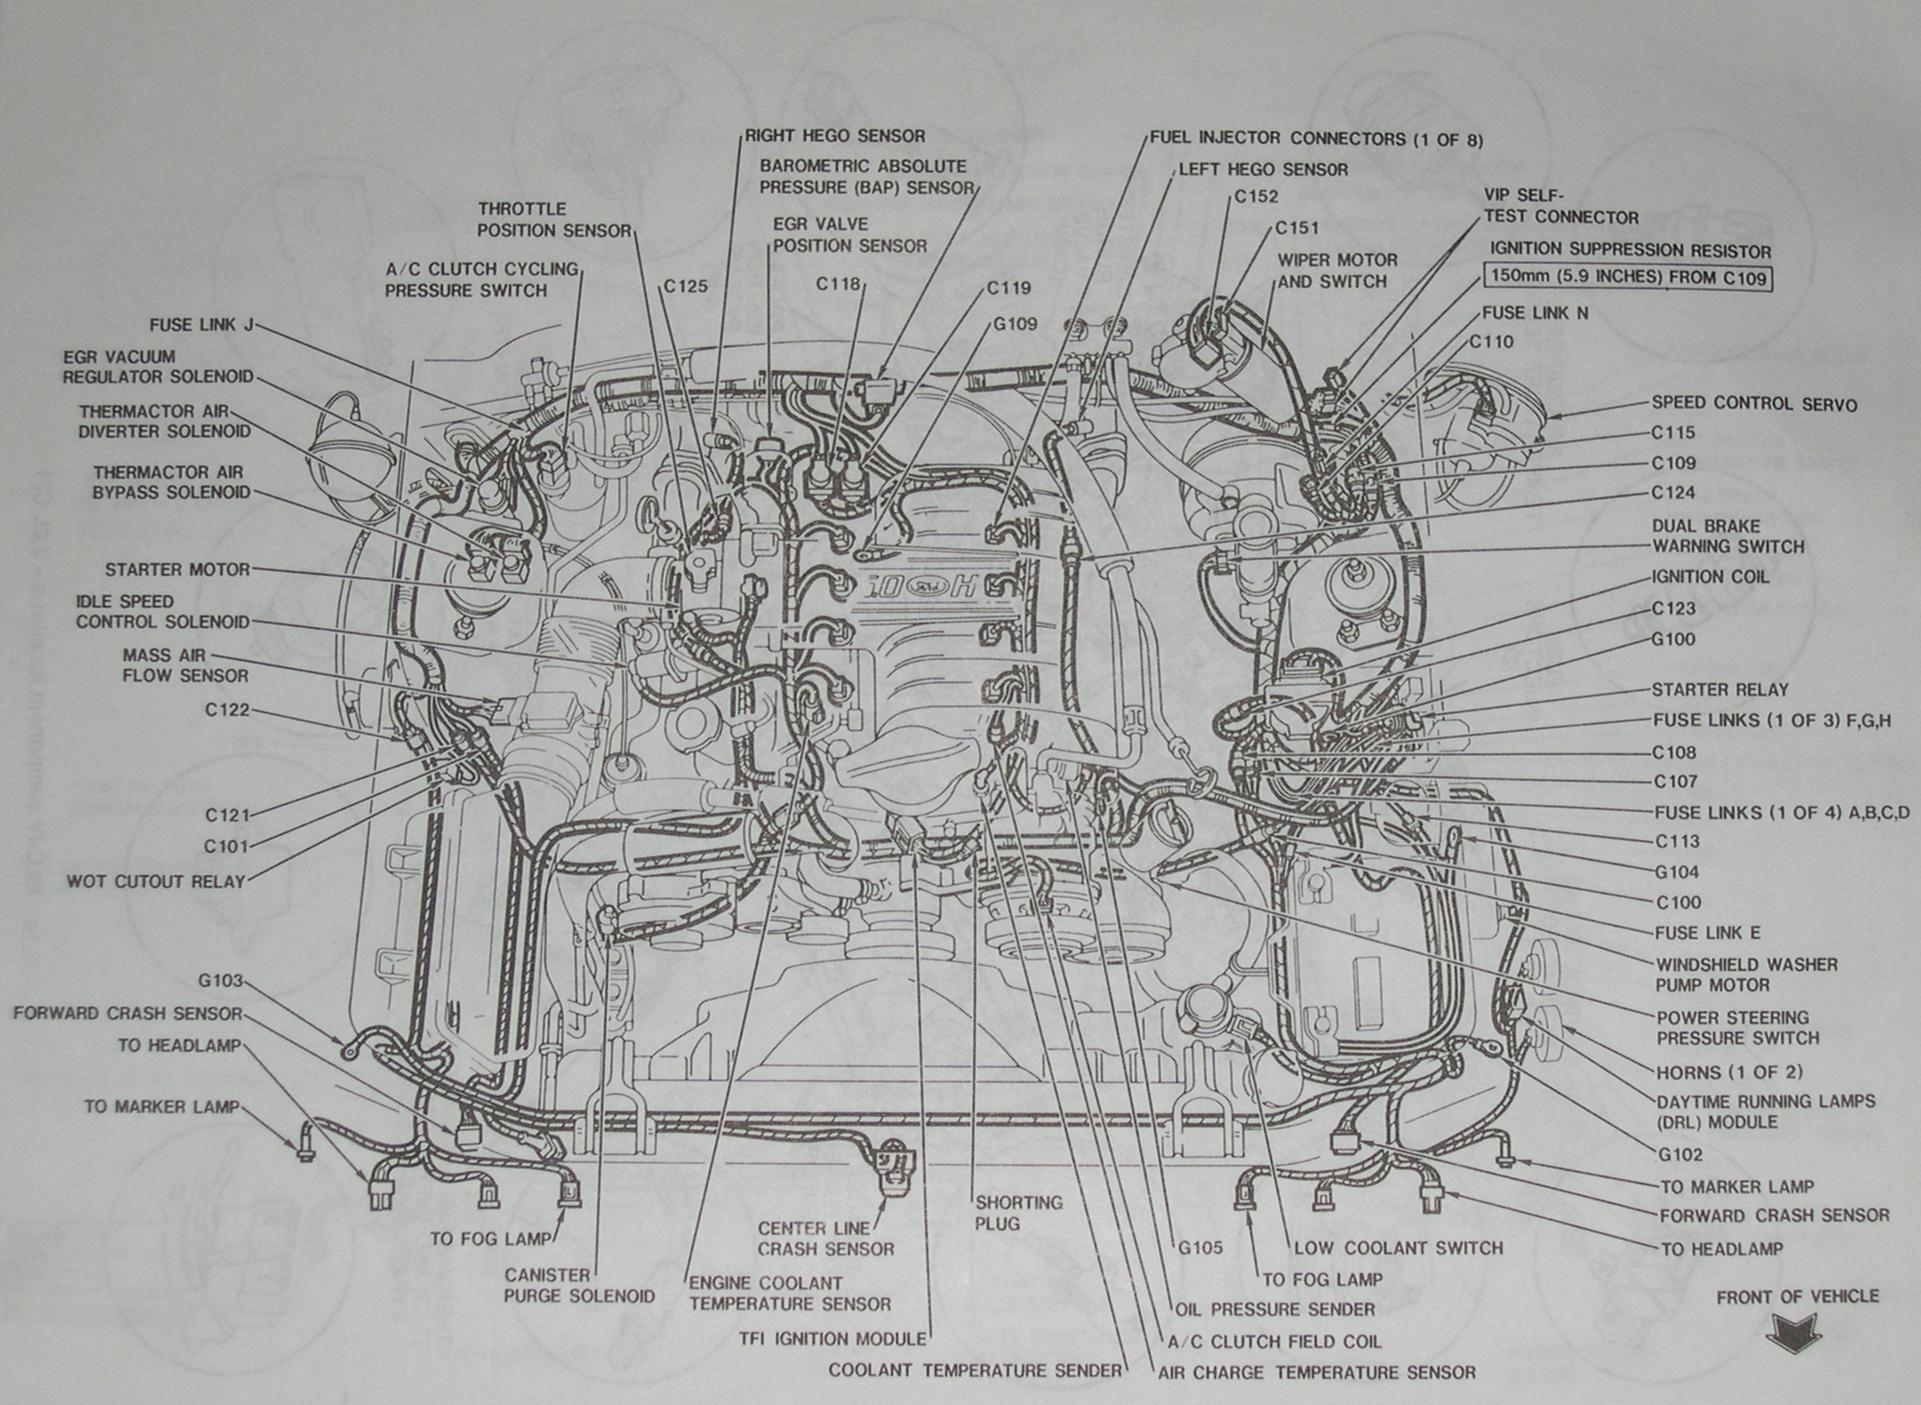 Mustang Engine Layout 94 95 mustang 5 0 detailed mustang engine layout 95 mustang wiring diagram at n-0.co